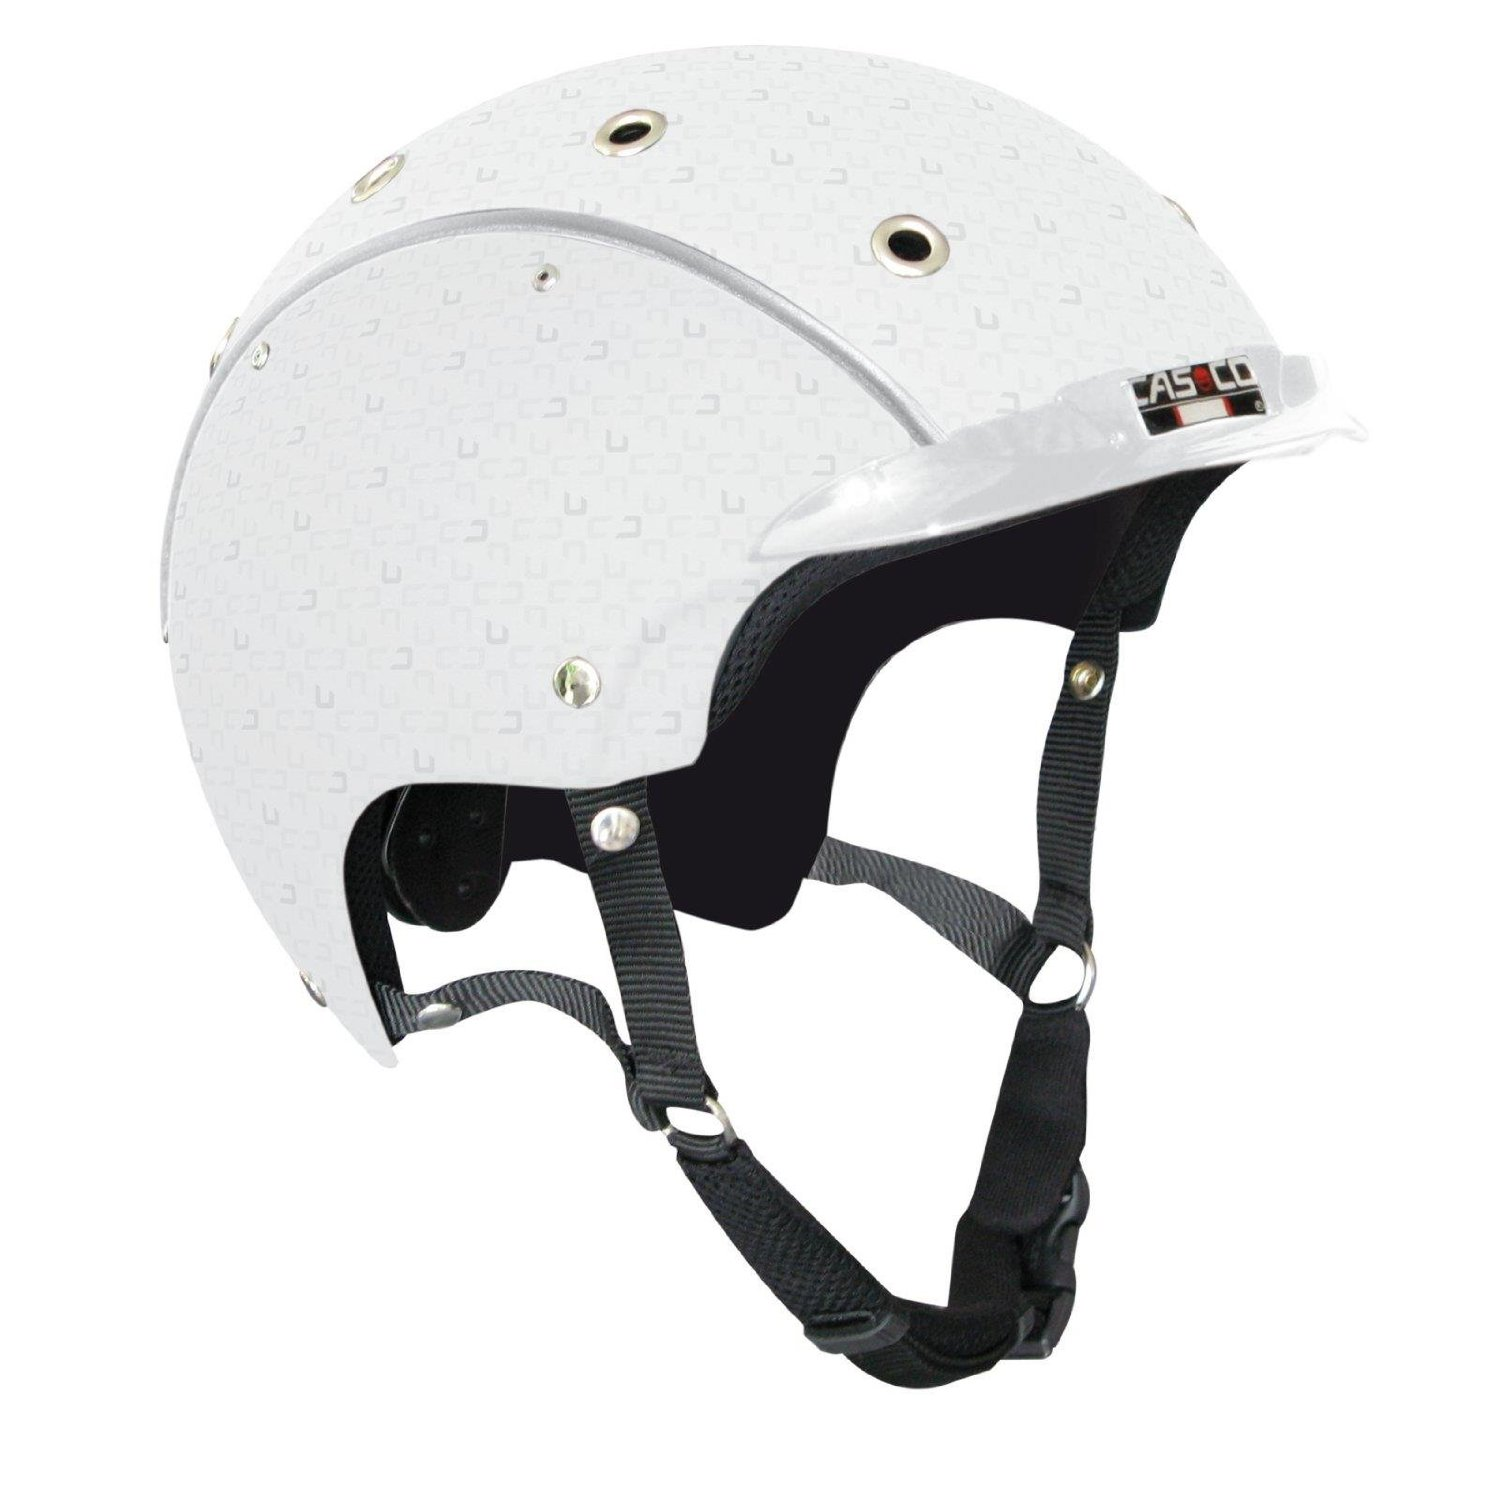 Casco e.Motion Cruiser Star